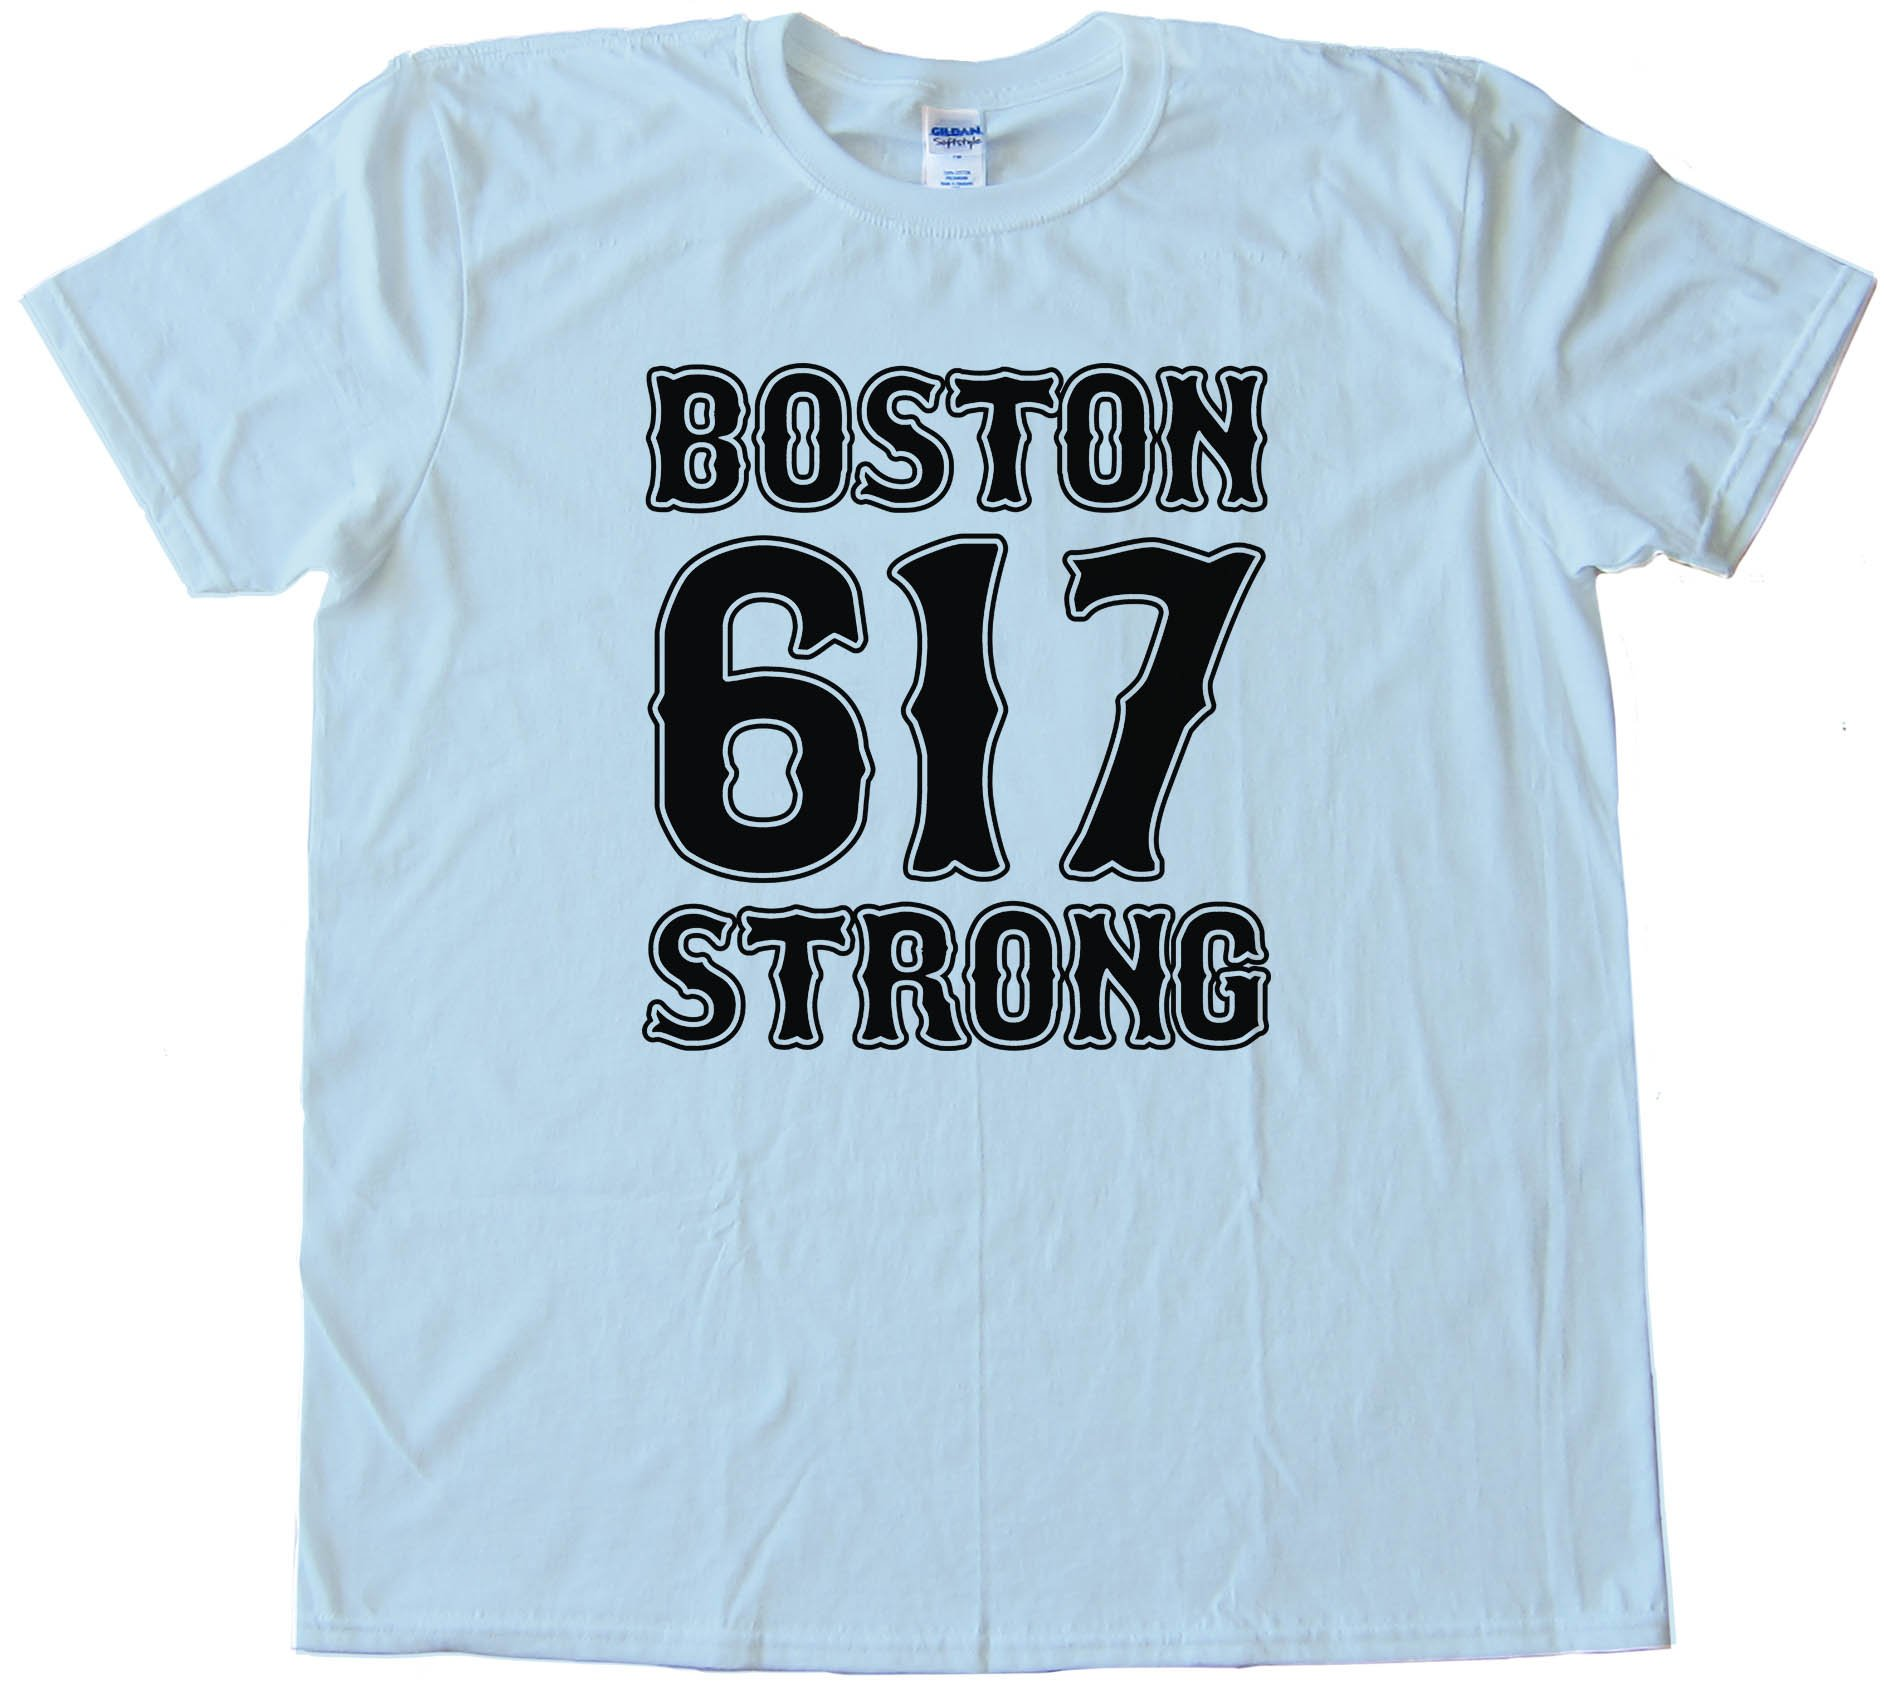 617 Boston Strong - Tee Shirt